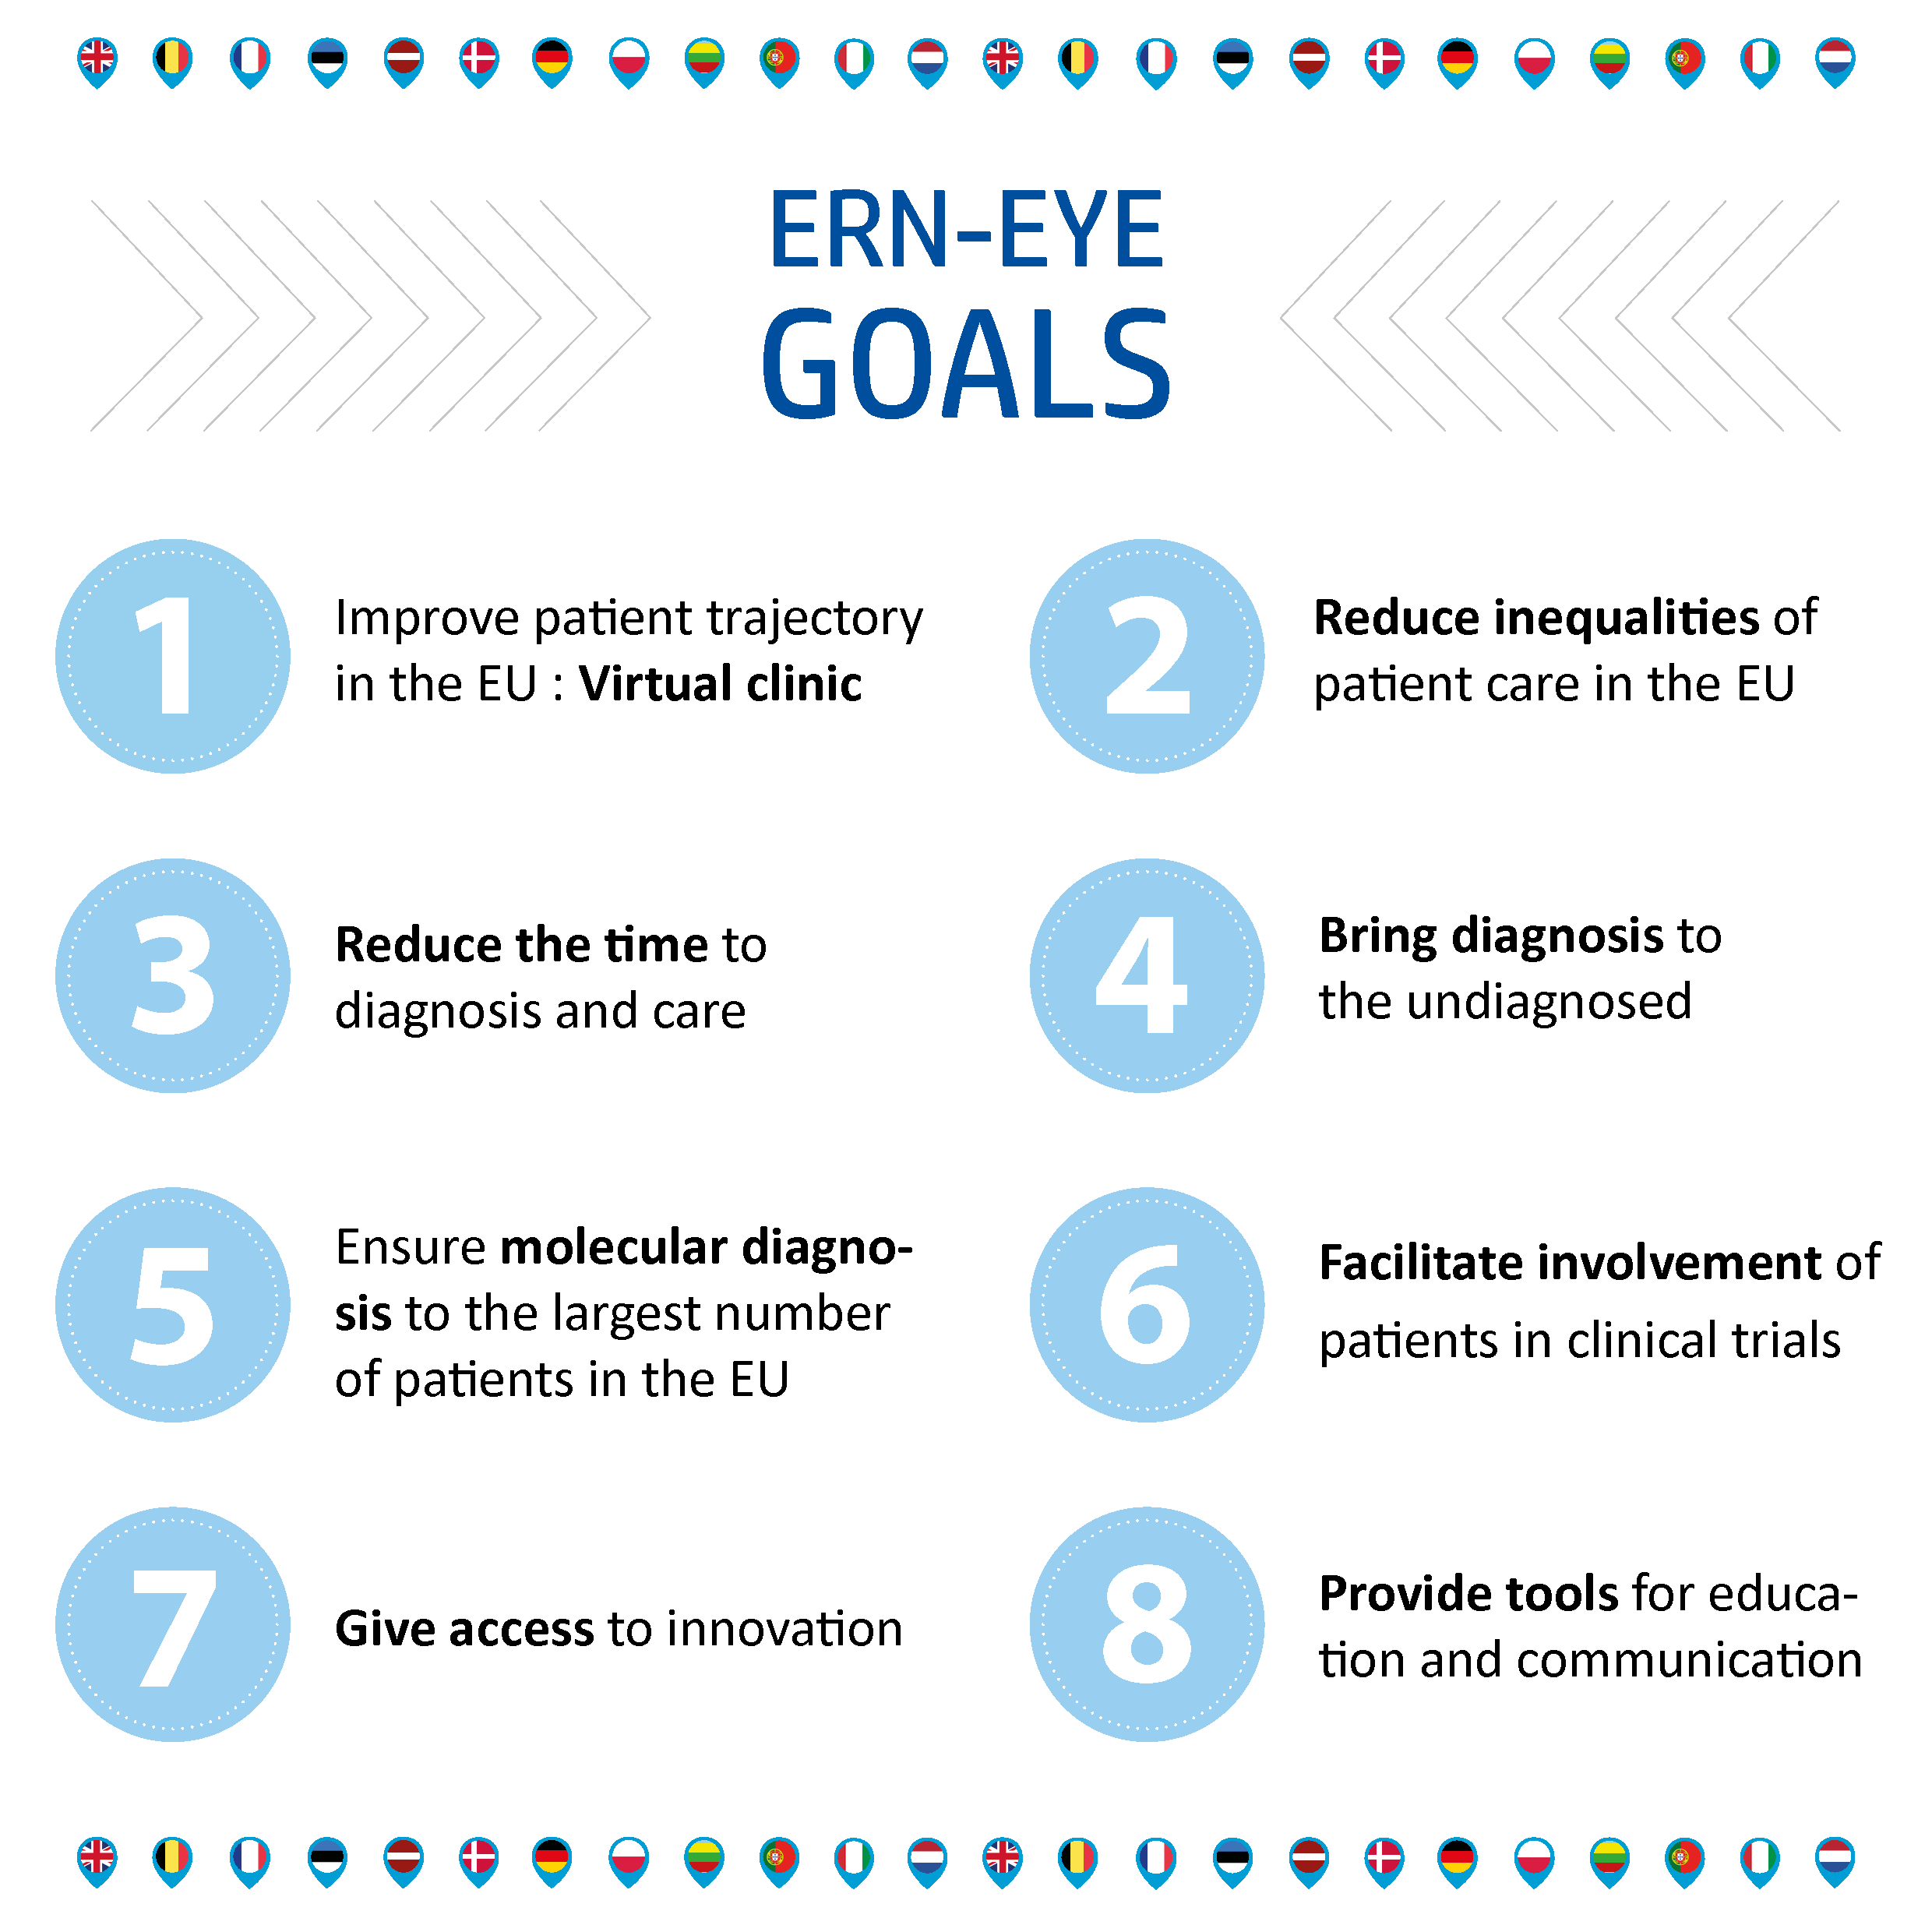 ERns Goals: 1.Improve patient trajectory in the EU ⇒ Virtual clinic 2.Reduce inequalities of patient care in the EU 3.	Reduce the time to diagnosis and care 4.Bring diagnosis to the undiagnosed 5.Ensure molecular diagnosis to the largest number of patient